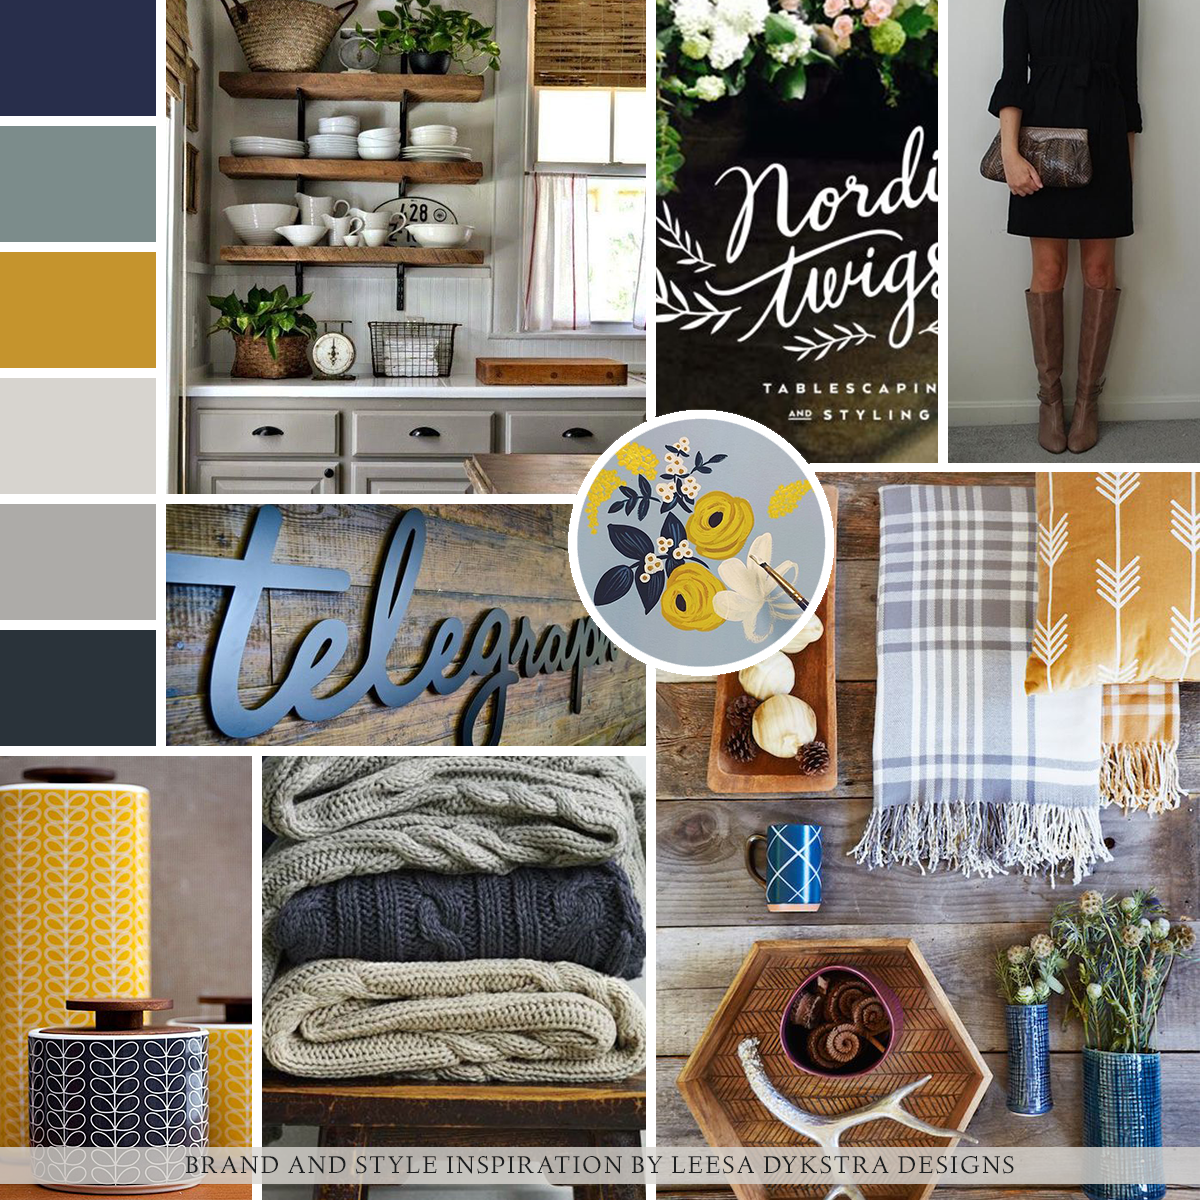 Brand and Style Inspiration for KC England Photography by Leesa Dykstra Designs